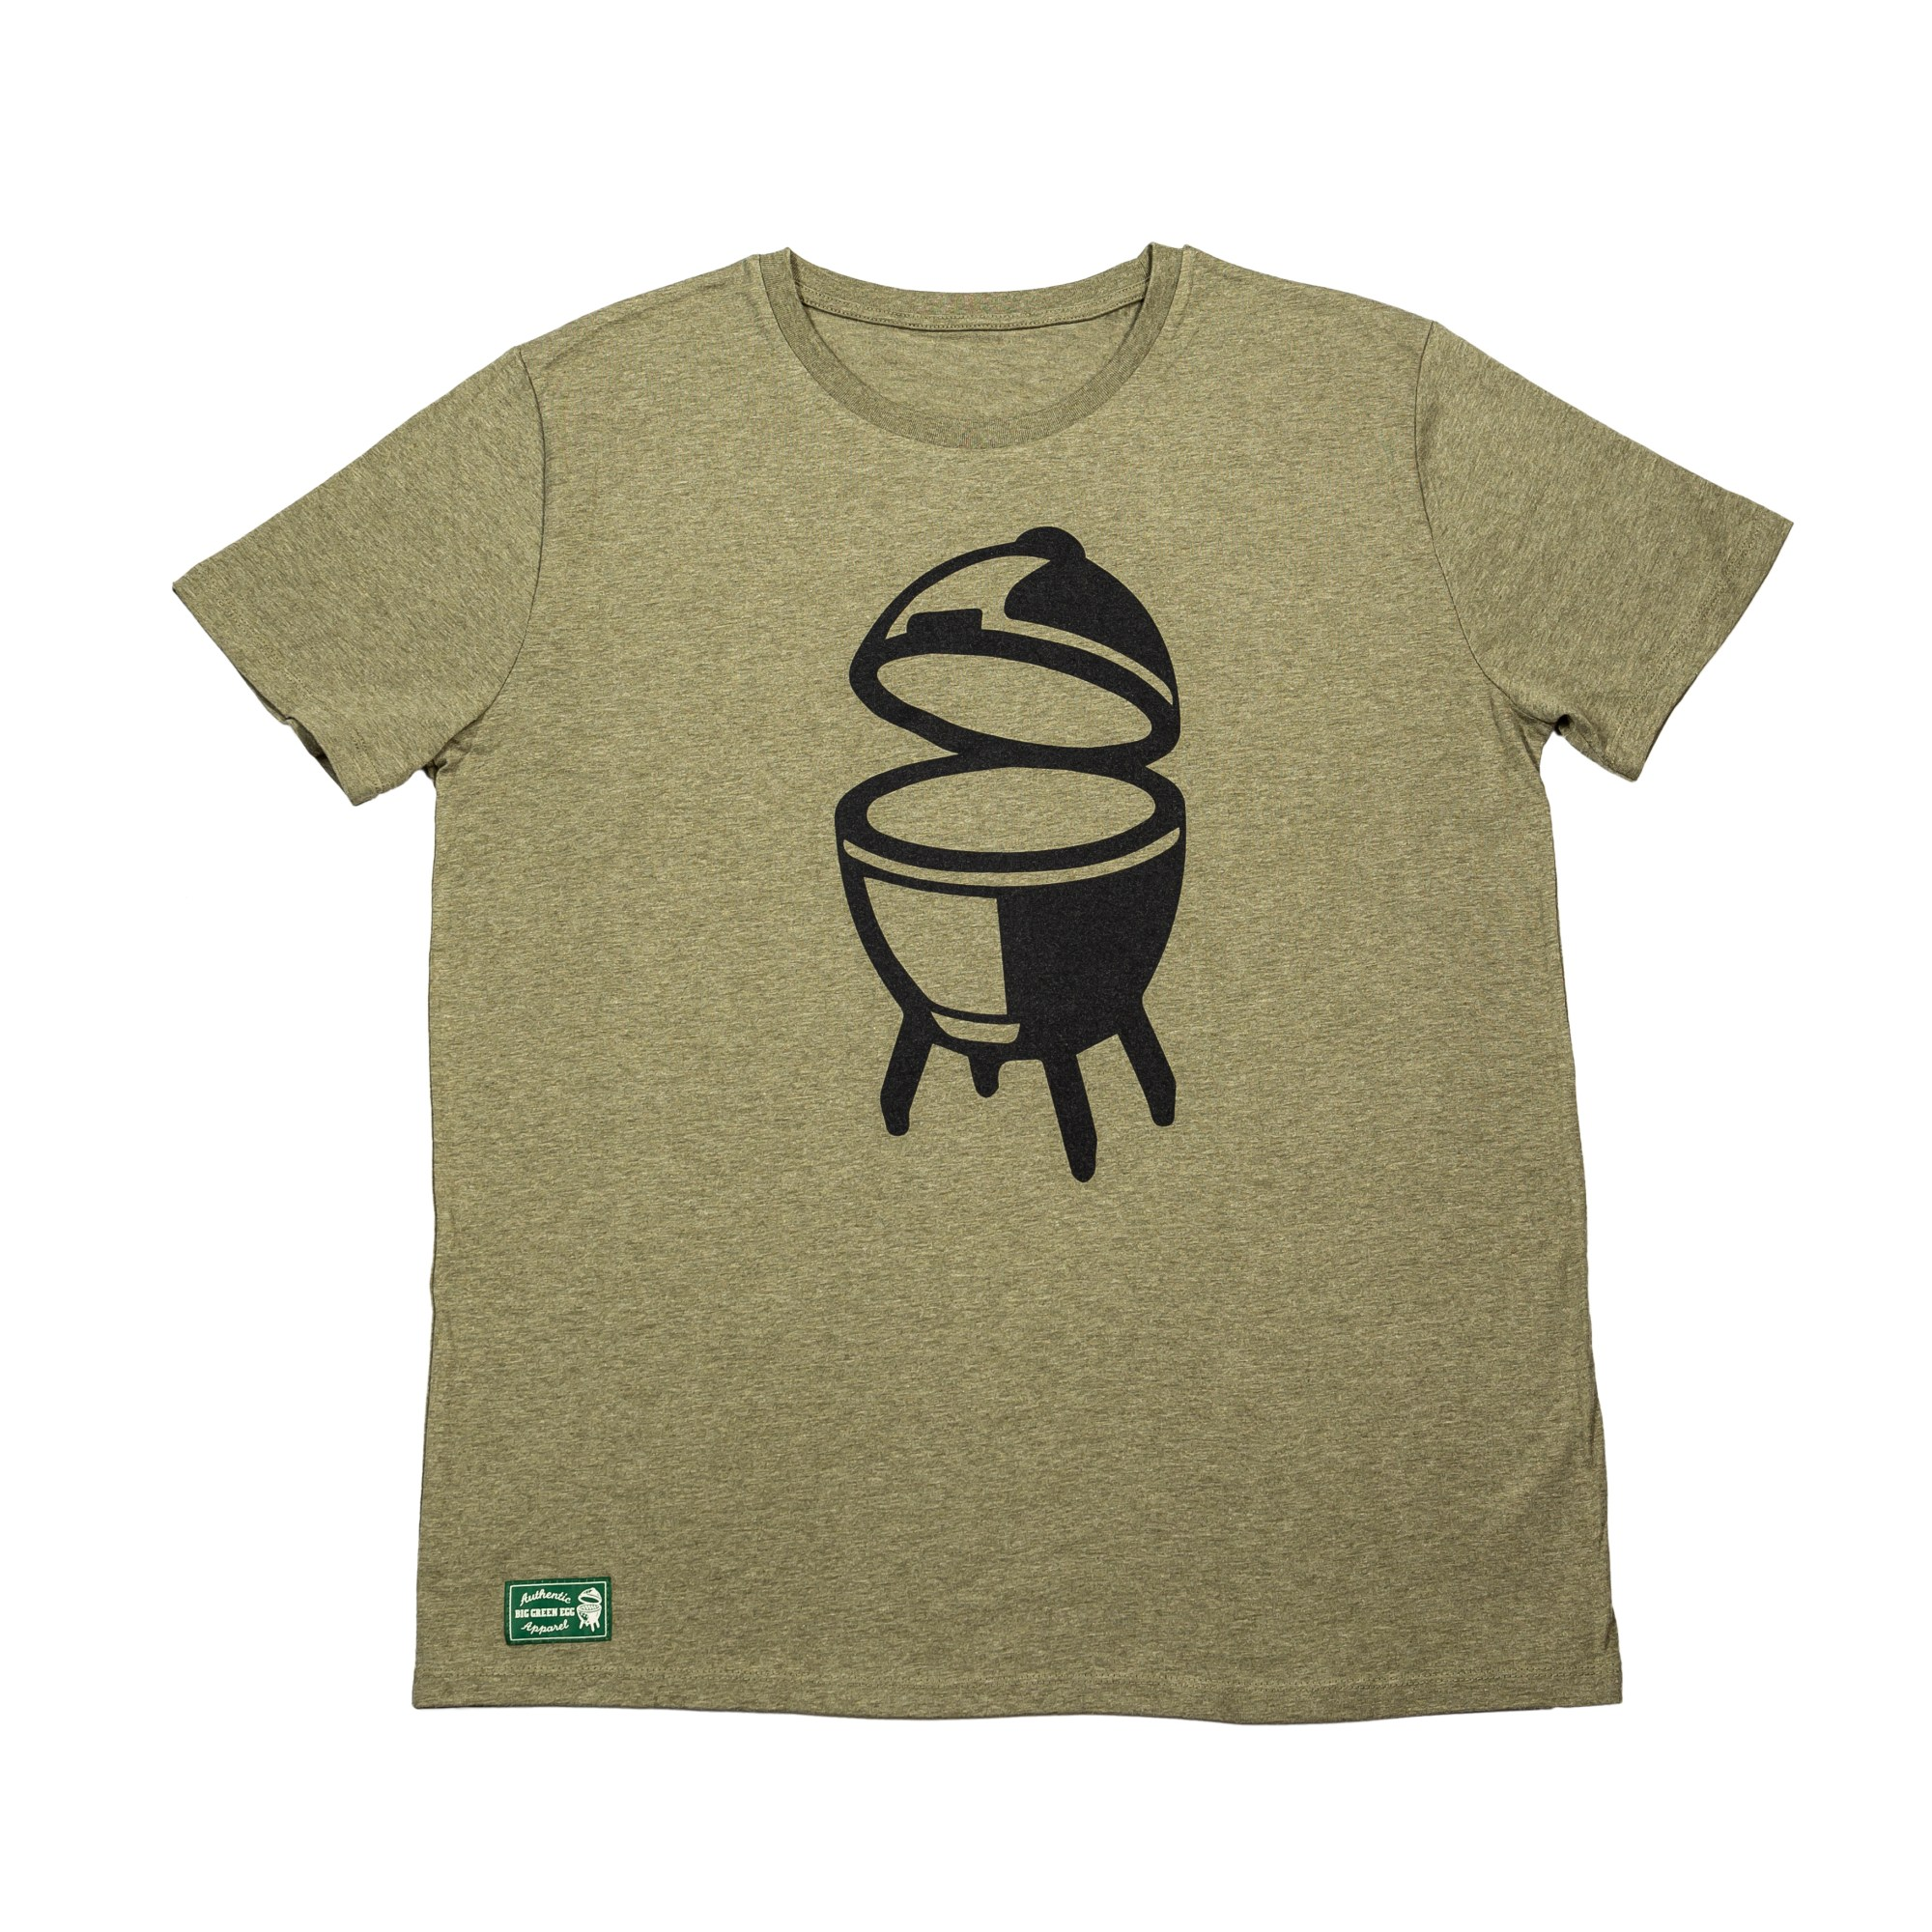 Outdoor Küche Mit Green Egg Bge T Shirt Olive Online Shop Big Green Egg Schweiz